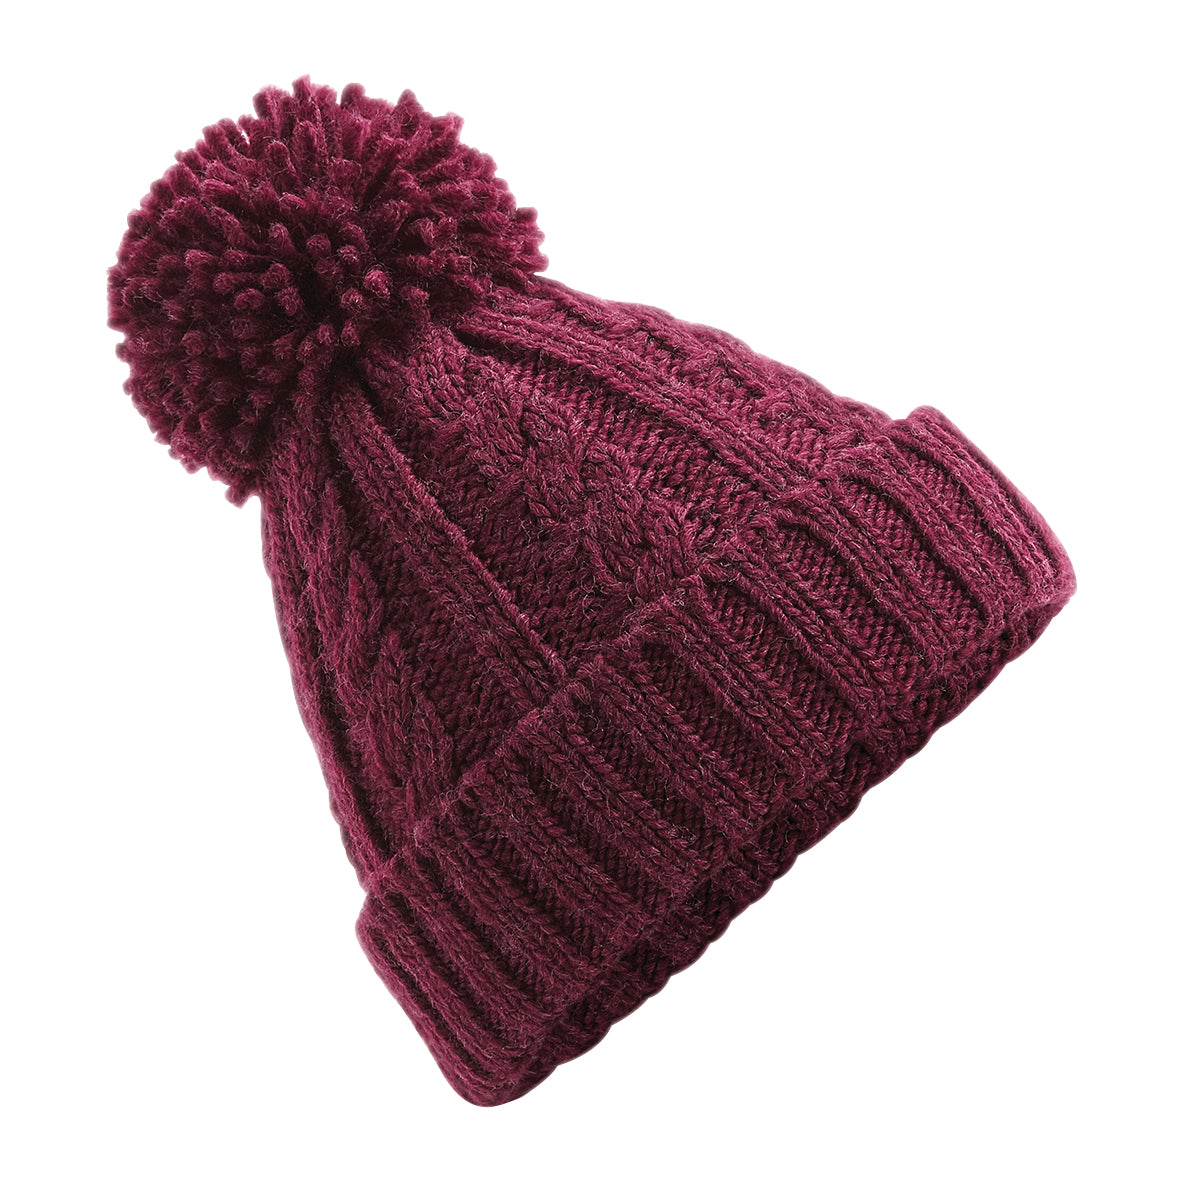 Cable Knit Melange Winter Bobble Hat H0006 - Illustrated Identity Ltd.